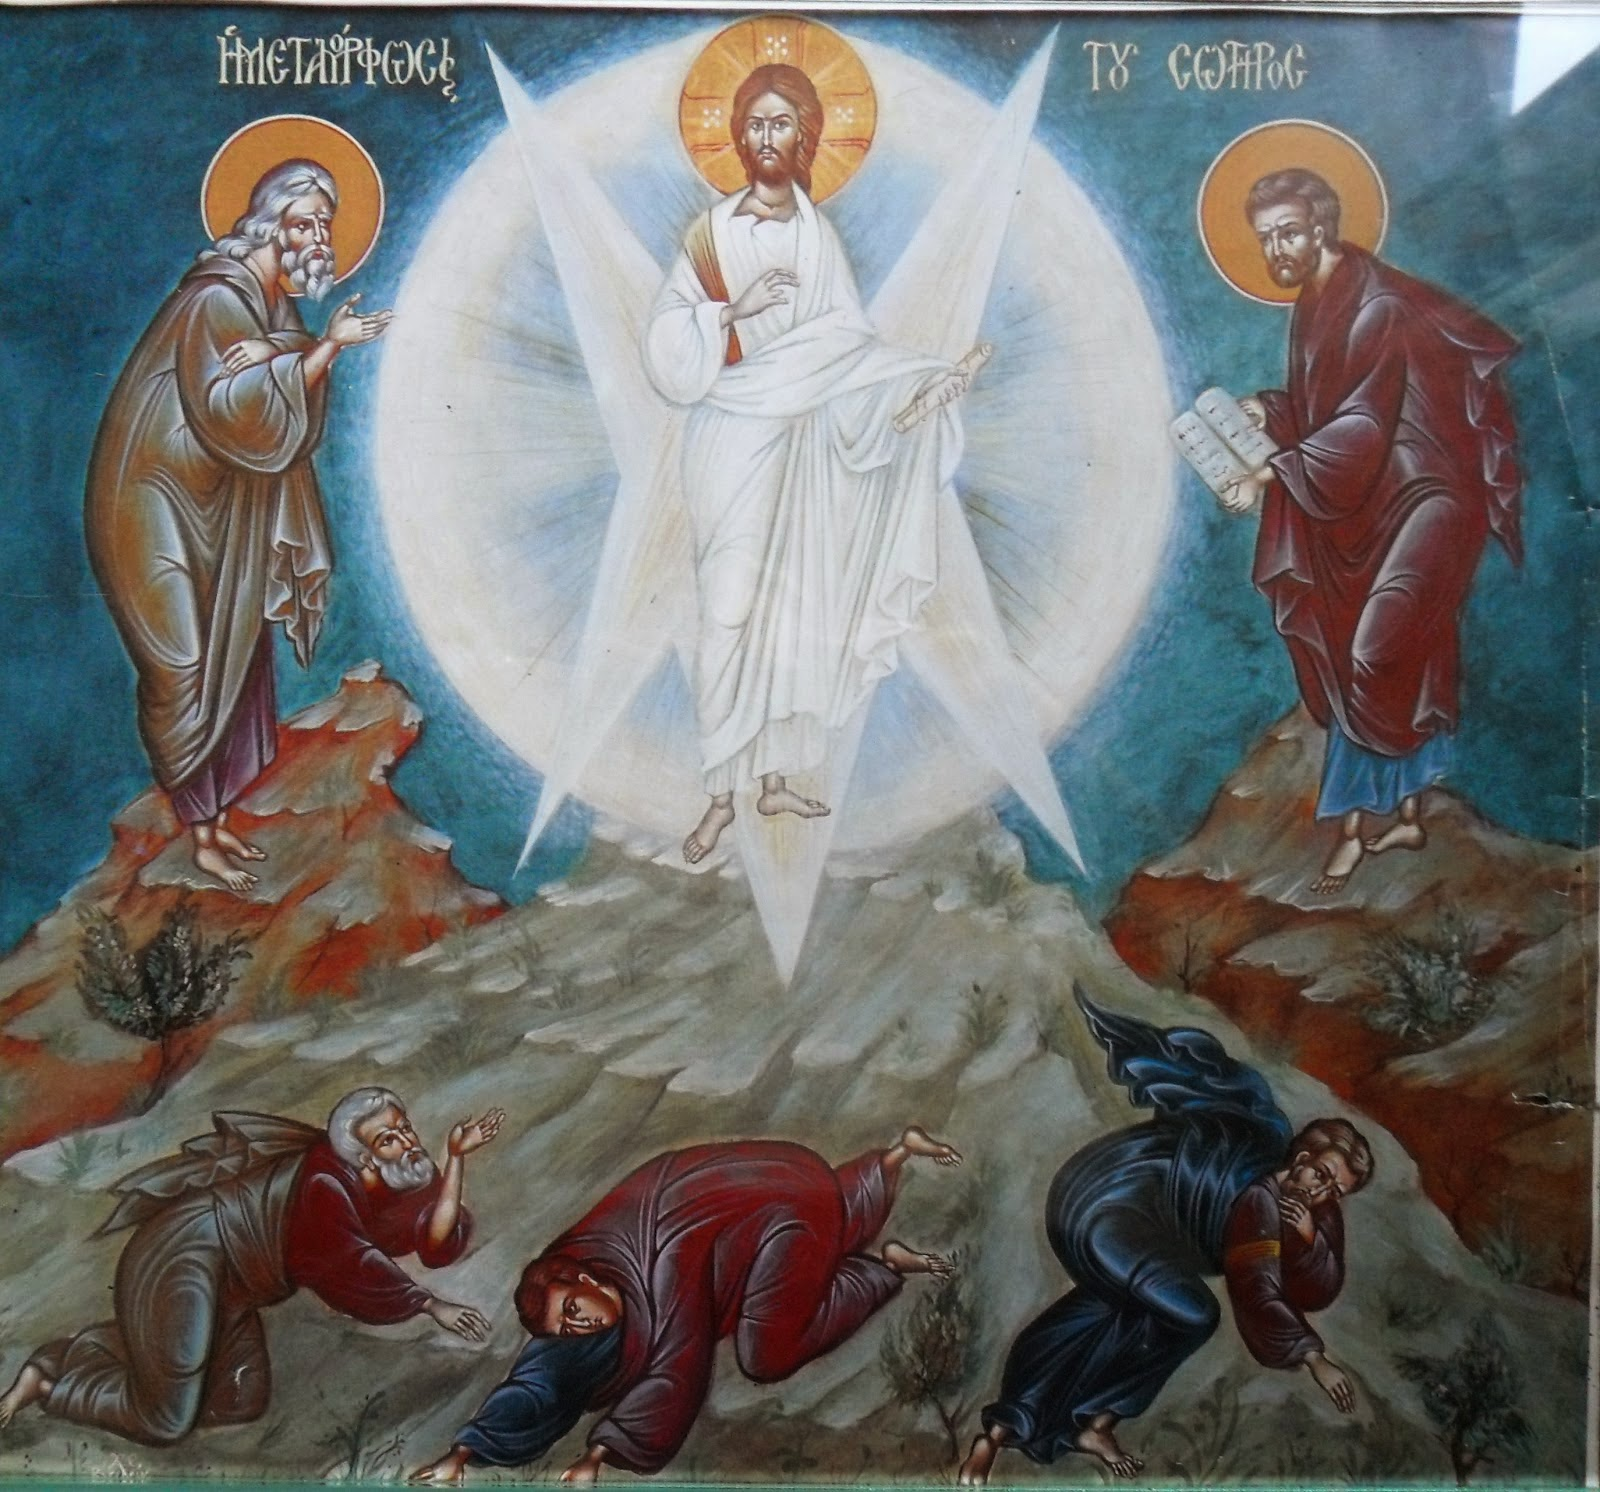 Transfiguration – The Morning Offering